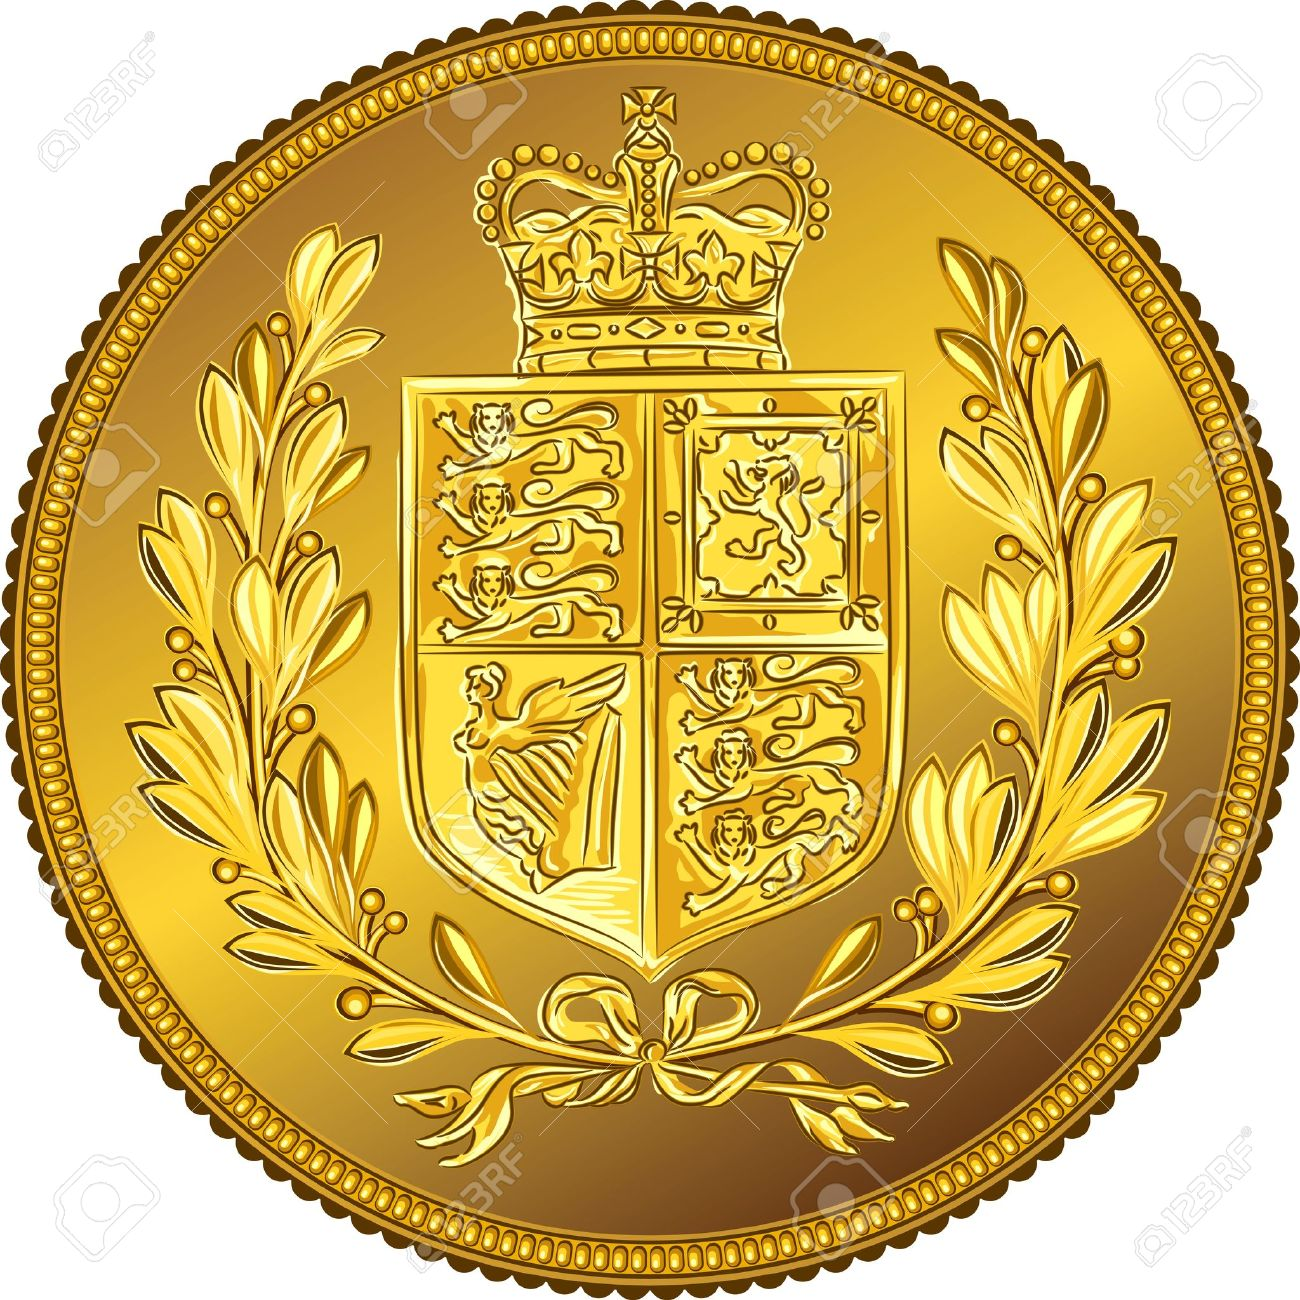 British money gold coin Sovereign with the image of a heraldic shield and crown, isolated on white background - 13880937